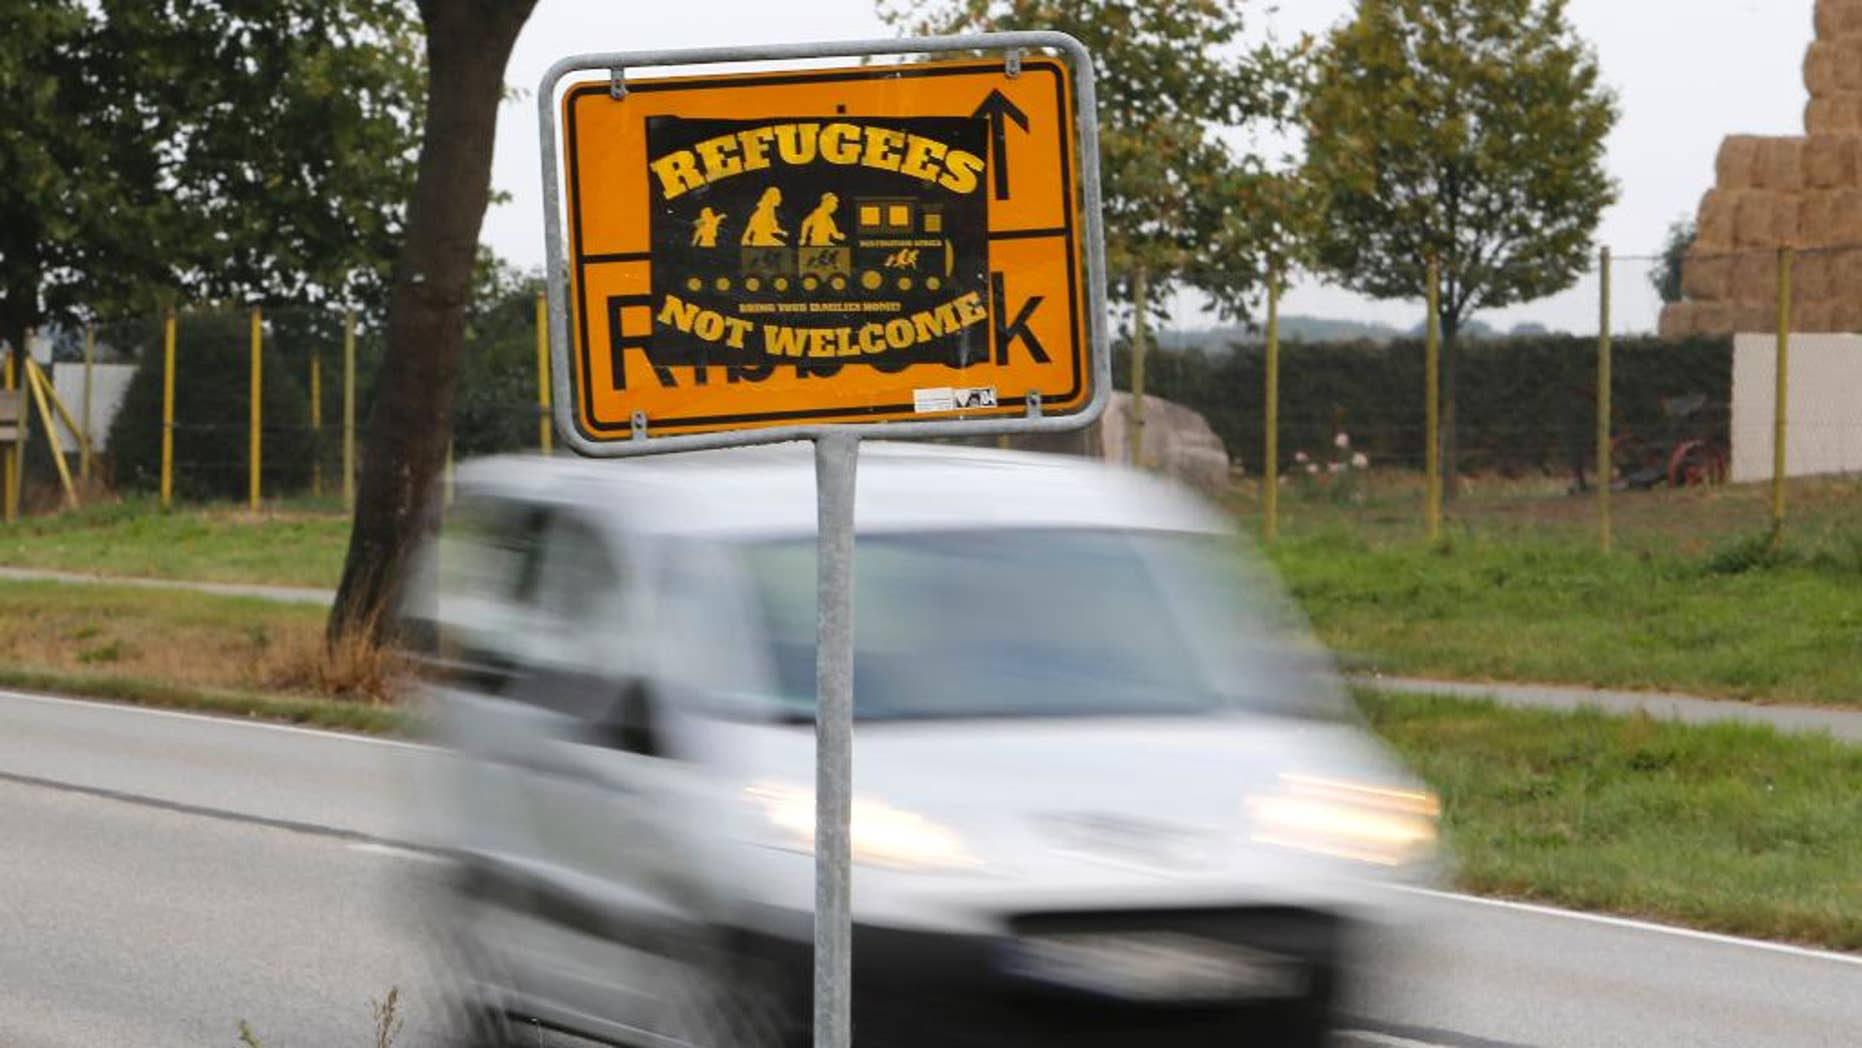 The Sept. 23, 2016 shows a poster 'Refugees not welcome' sticked on a city sign in the outskirts of Nauen, eastern Germany, one of several thousand hate crimes in Germany in 2016. (AP Photo/Ferdinand Ostrop)